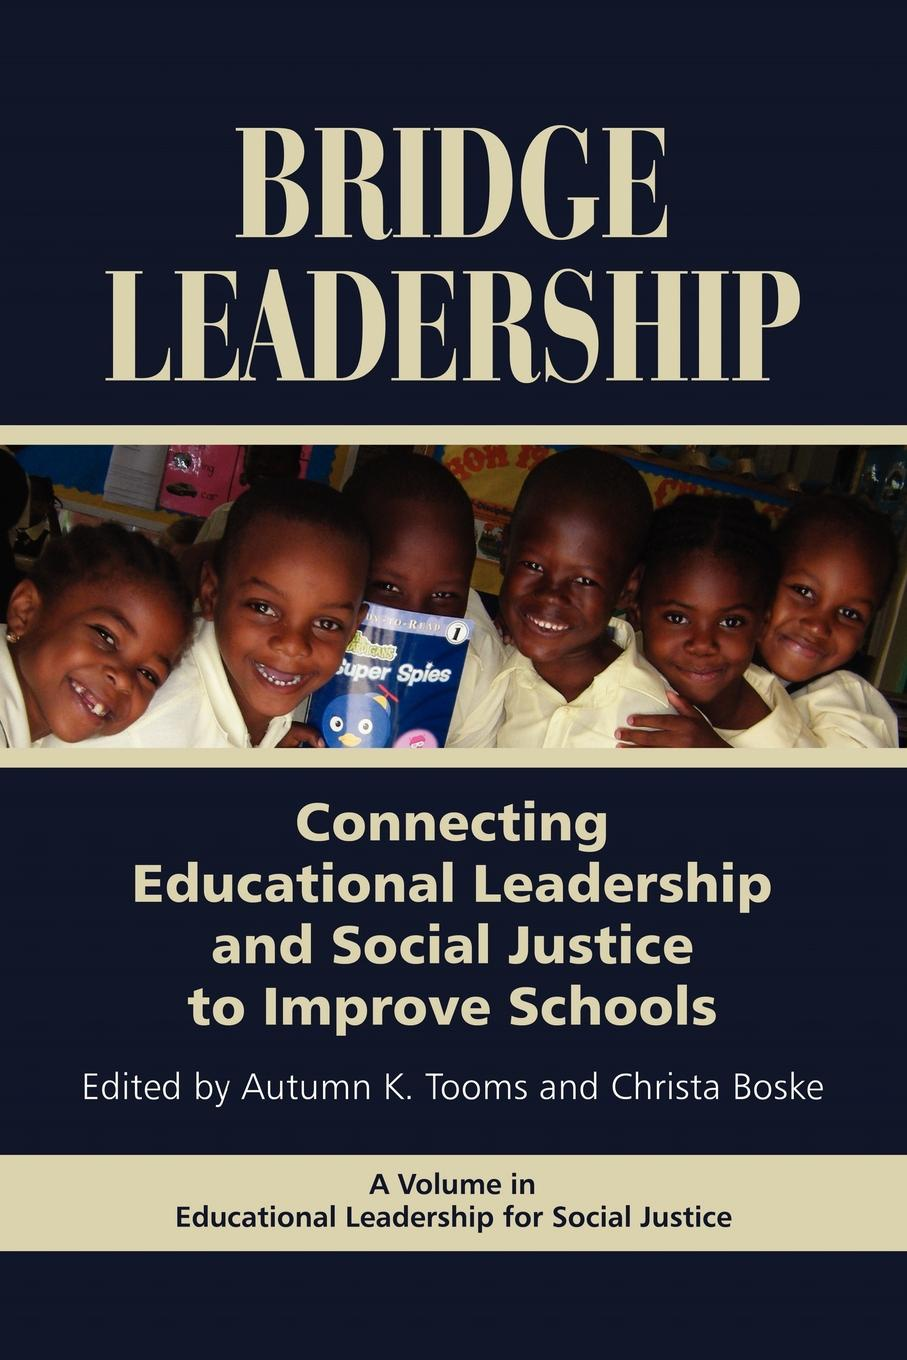 лучшая цена Bridge Leadership. Connecting Educational Leadership and Social Justice to Improve Schools (PB)